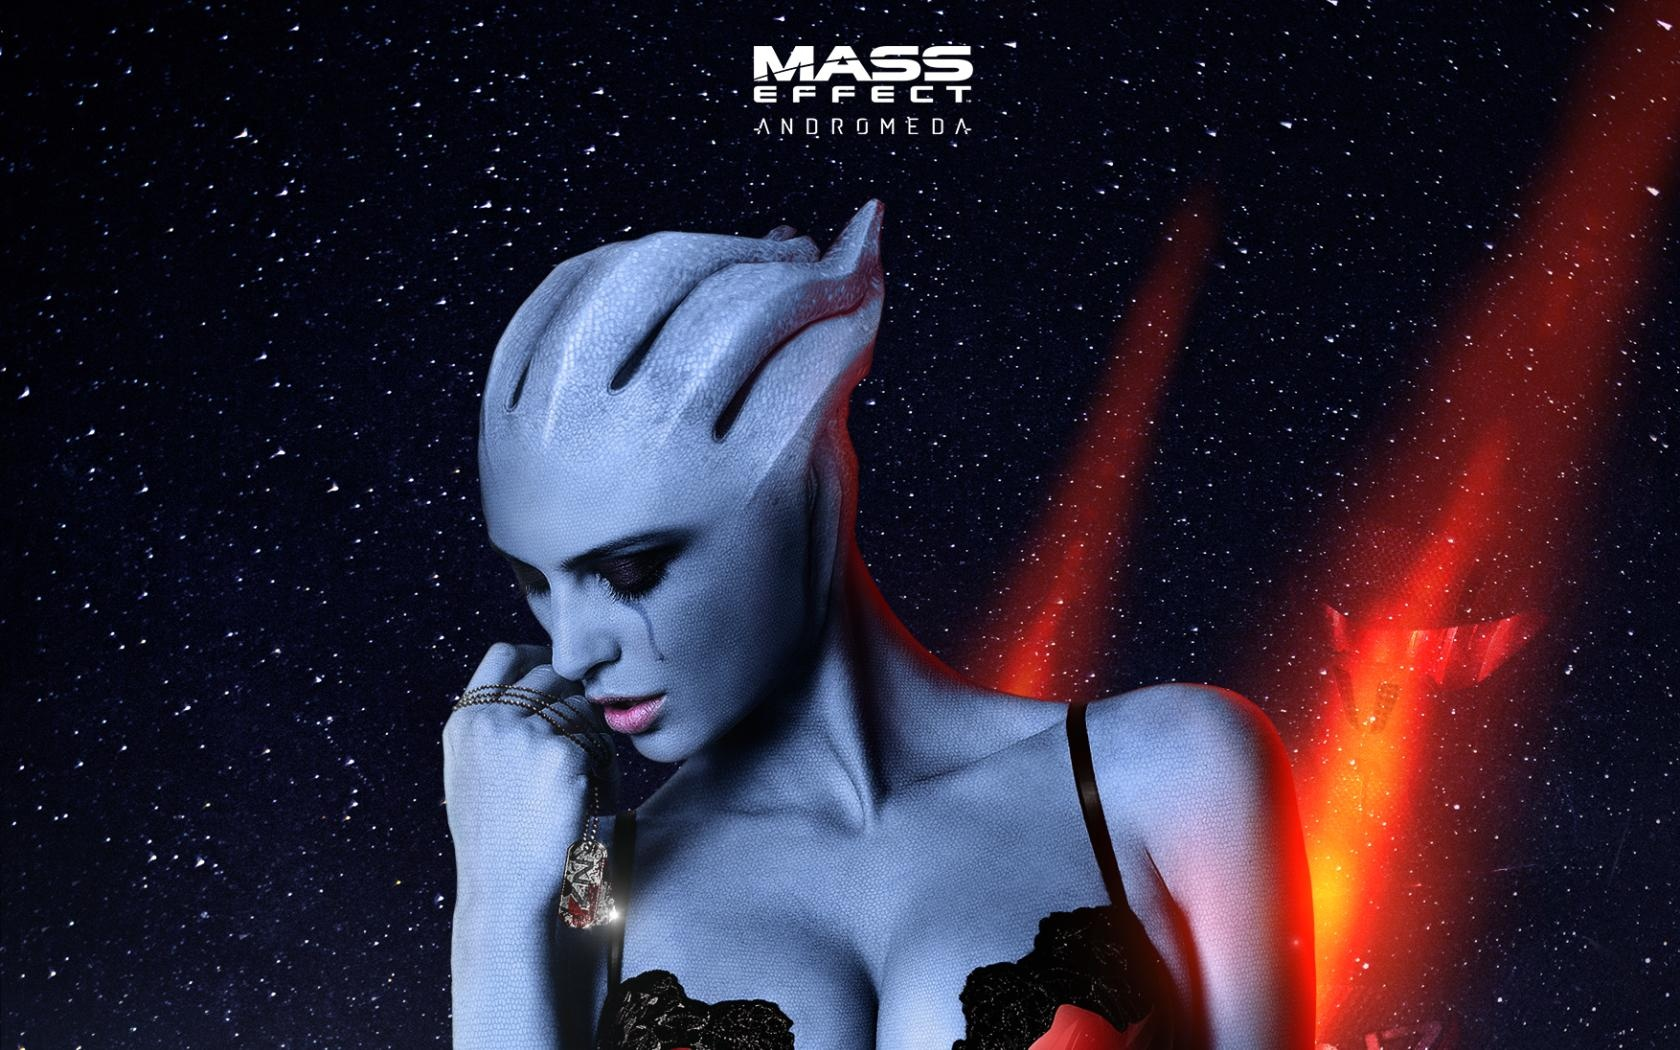 Heroes Fall Mass Effect Andromeda Wallpapers 1680x1050 490453